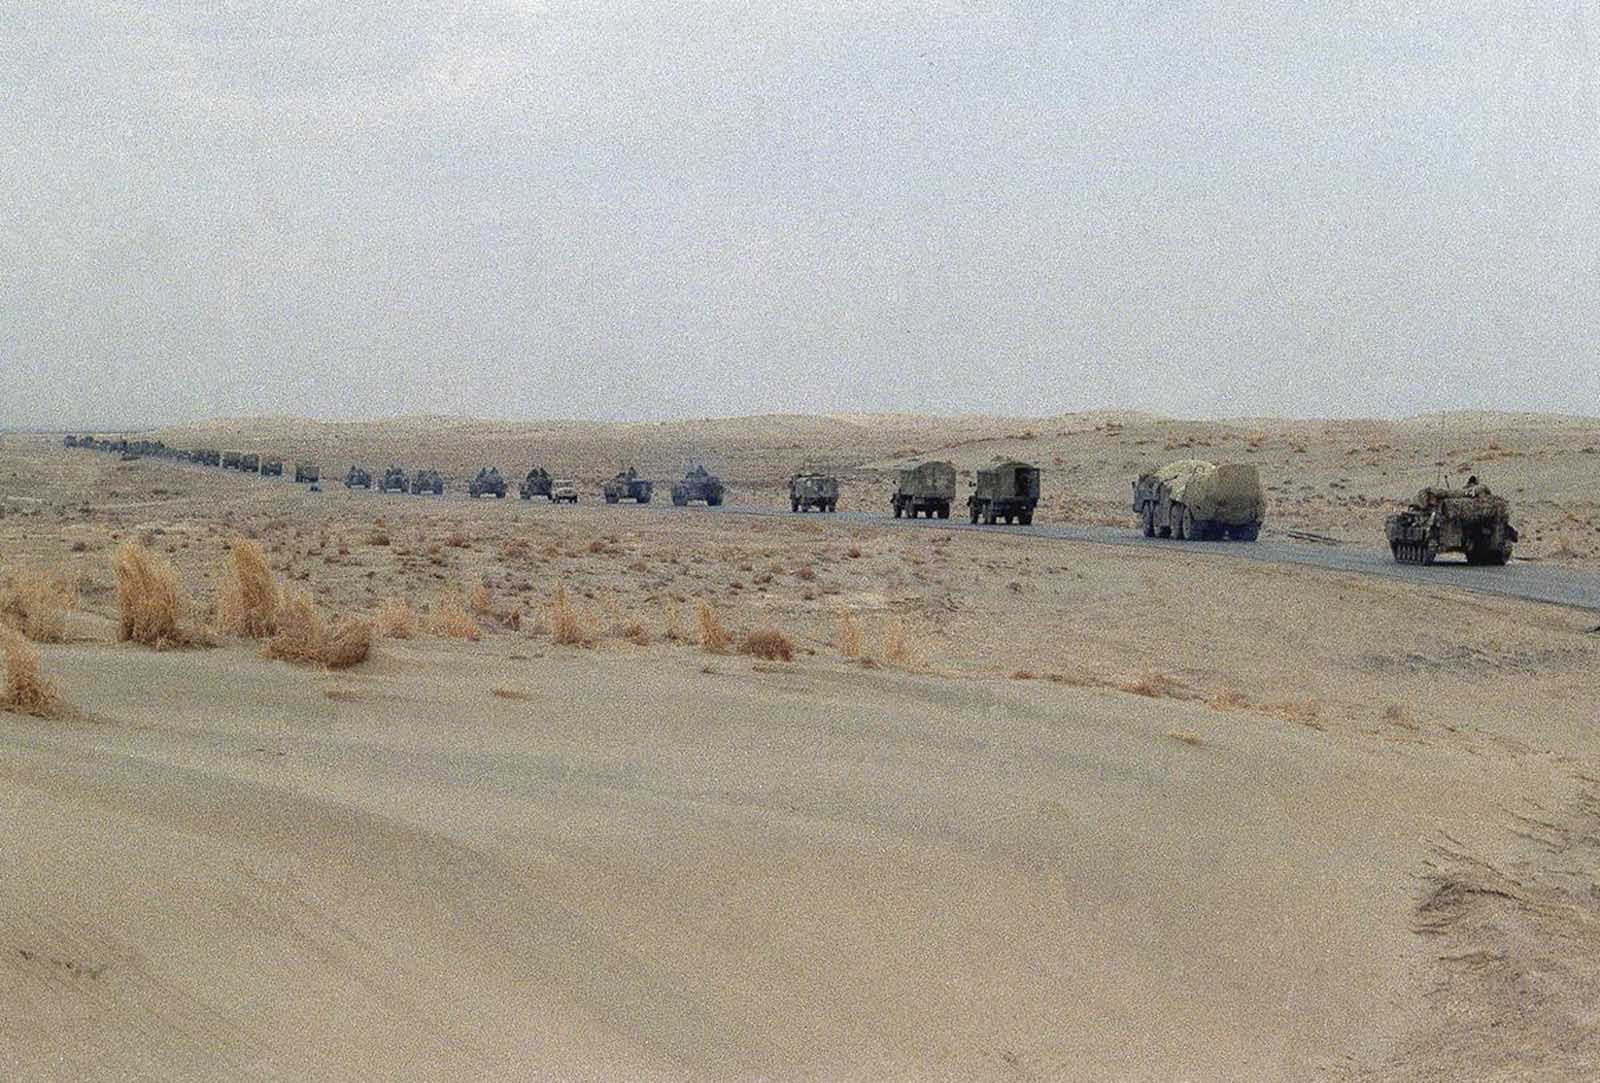 A column of Soviet armor and military trucks moves up the highway toward the Soviet border on February 7, 1989 in Hayratan. The convoy came from the Afghan capital Kabul as part of the withdrawal of Soviet soldiers.